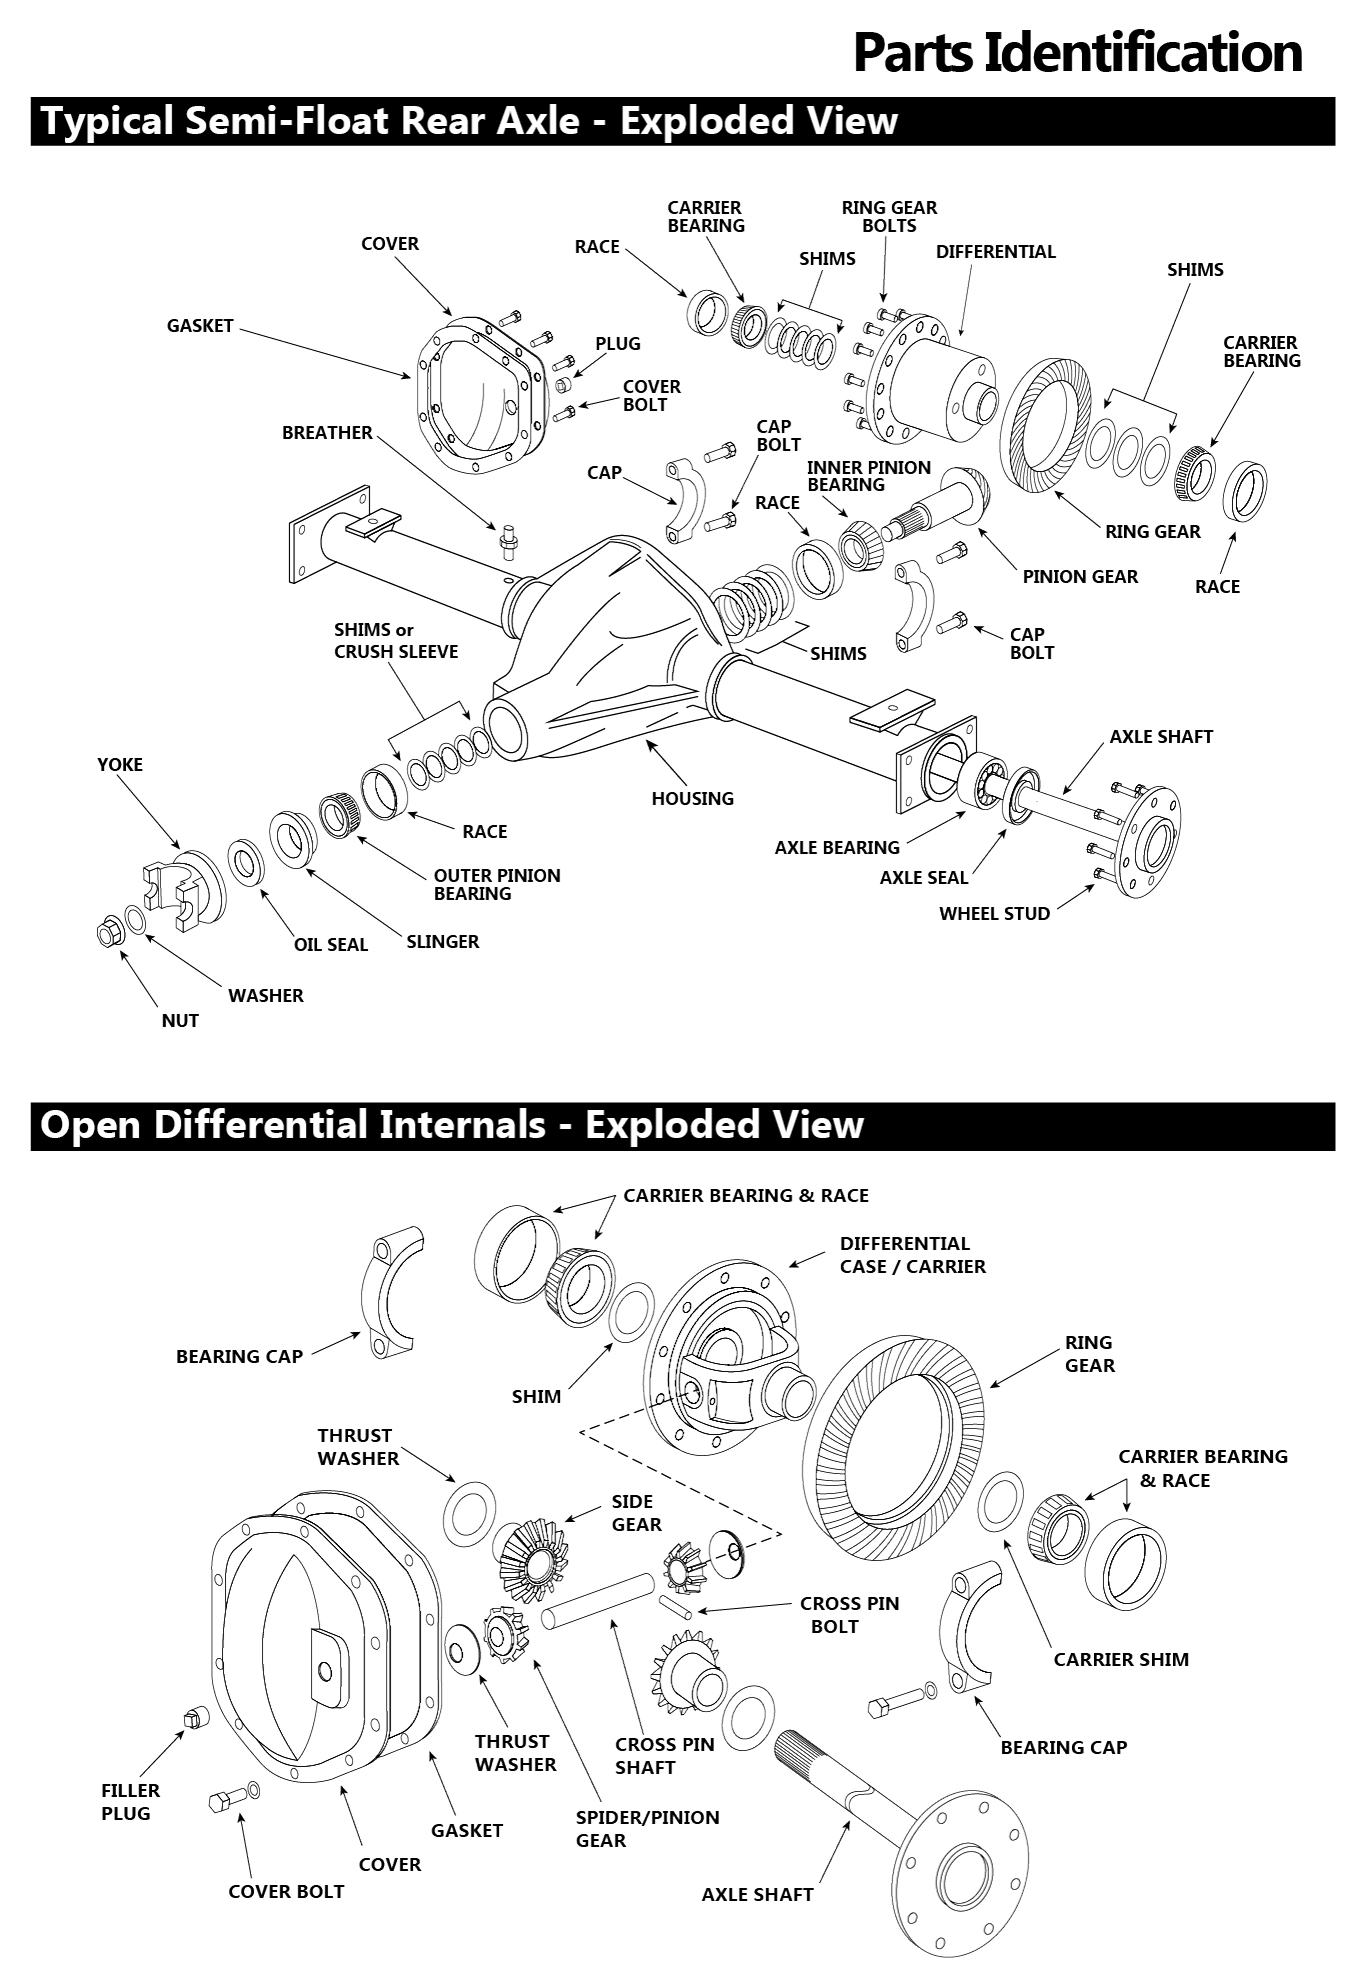 2003 toyota sequoia parts diagram rj11 wall socket wiring 2004 tundra limited html